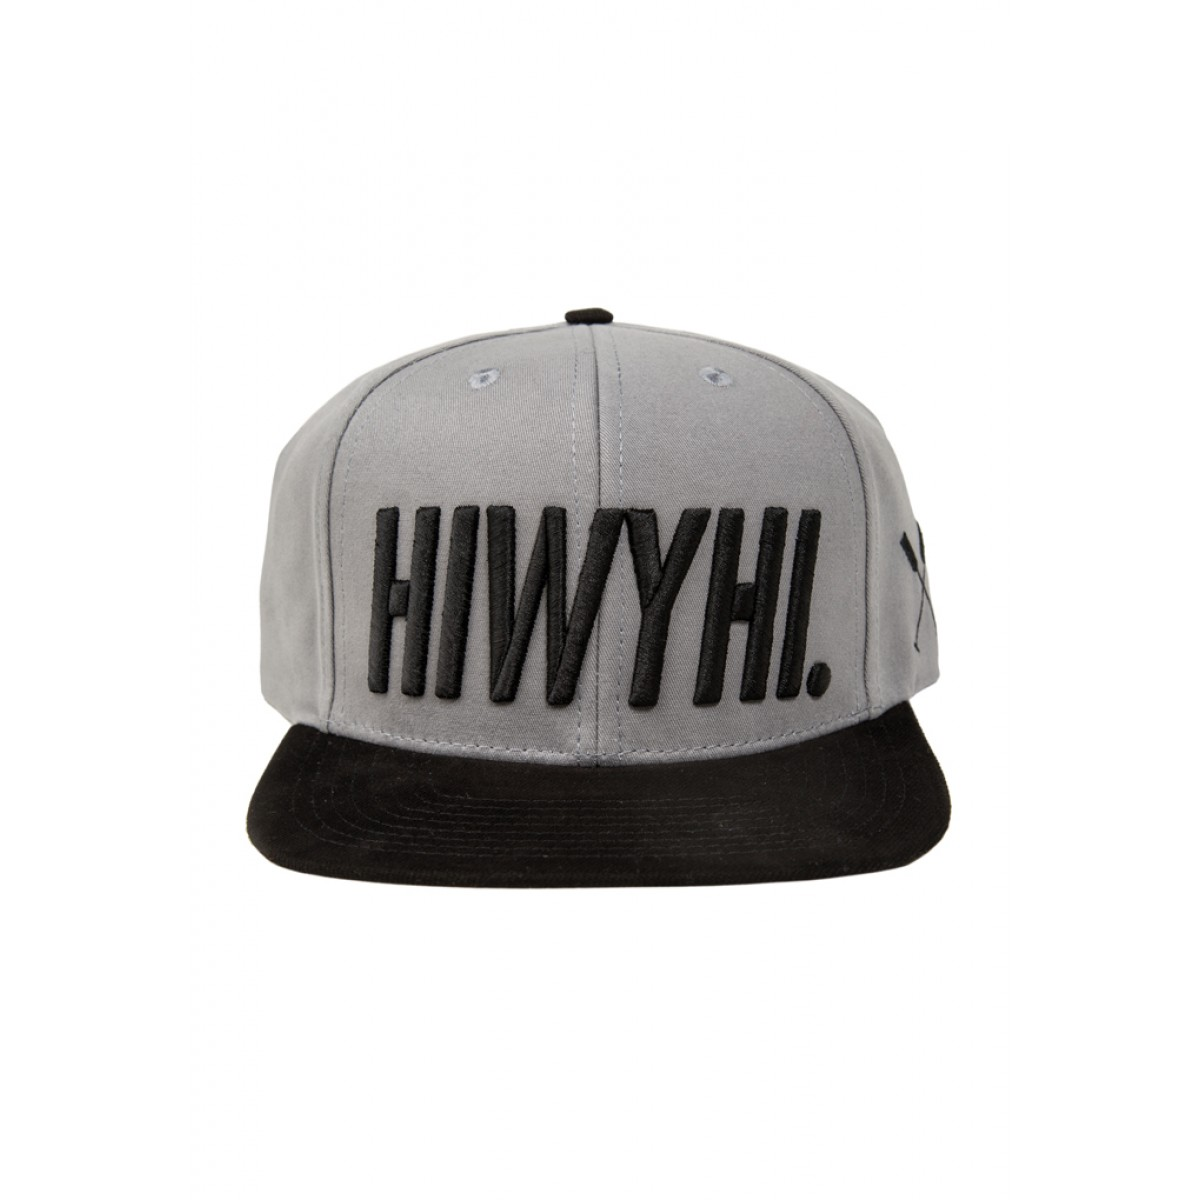 HOME IS WHERE YOUR HEART IS. - HIWYHI. SNAPBACK (GREY/BLACK)